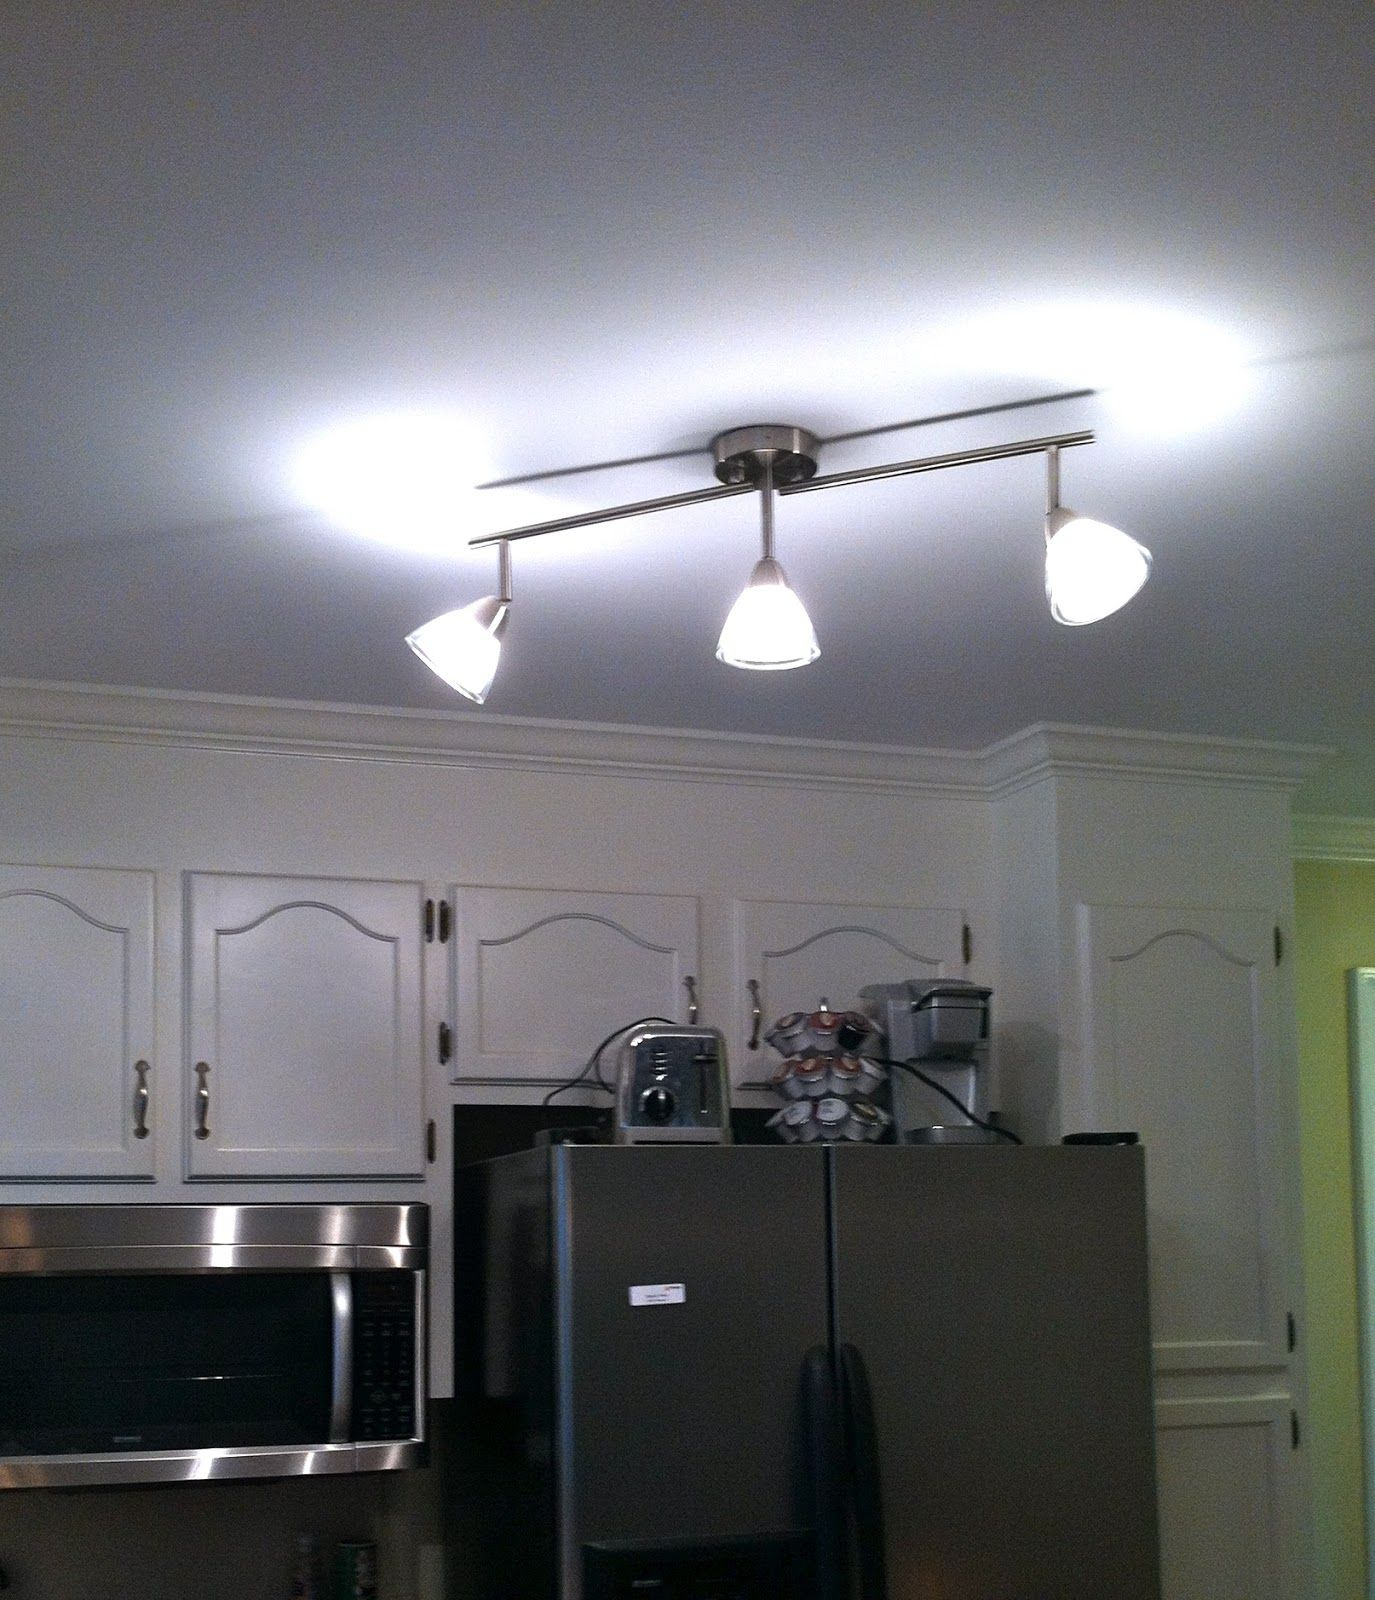 lowes kitchen light fixtures | Next up was the porch light ...